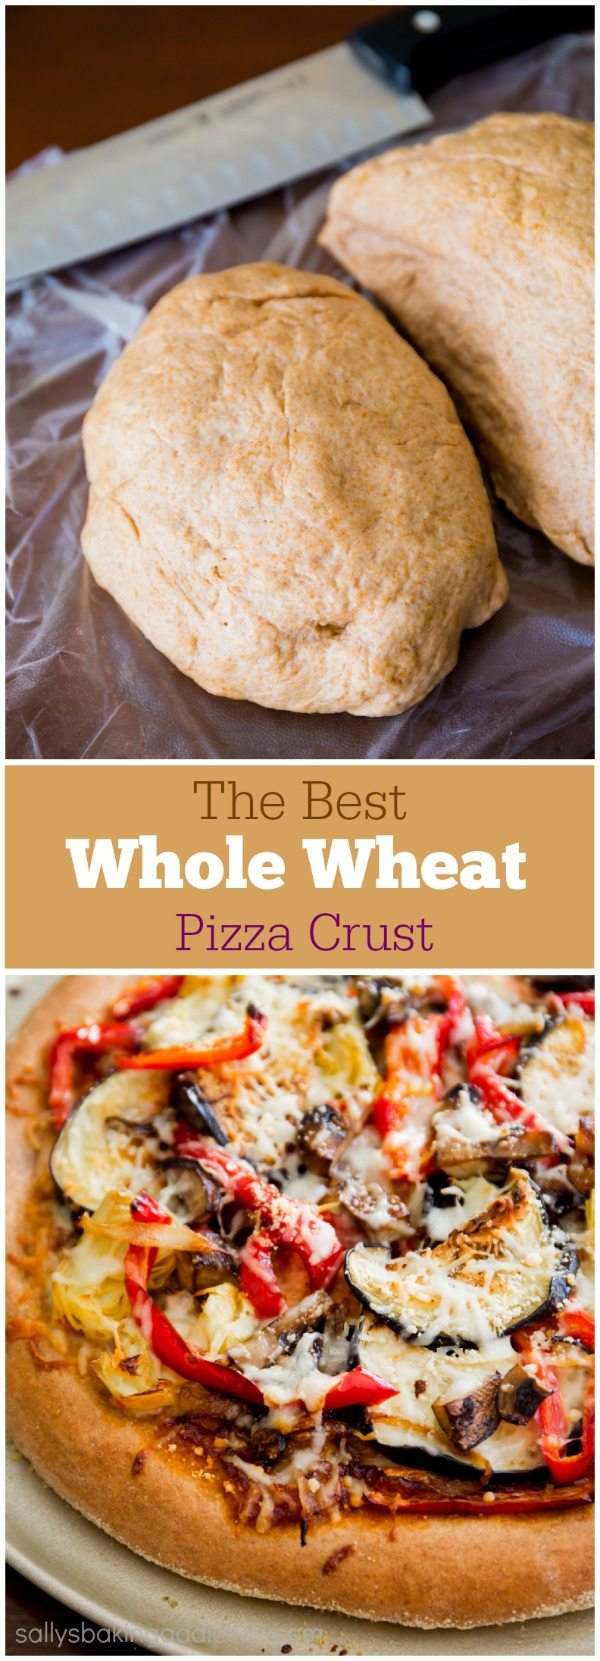 Make Homemade Whole Wheat Pizza Crust. Honey-sweetened, soft, fluffy